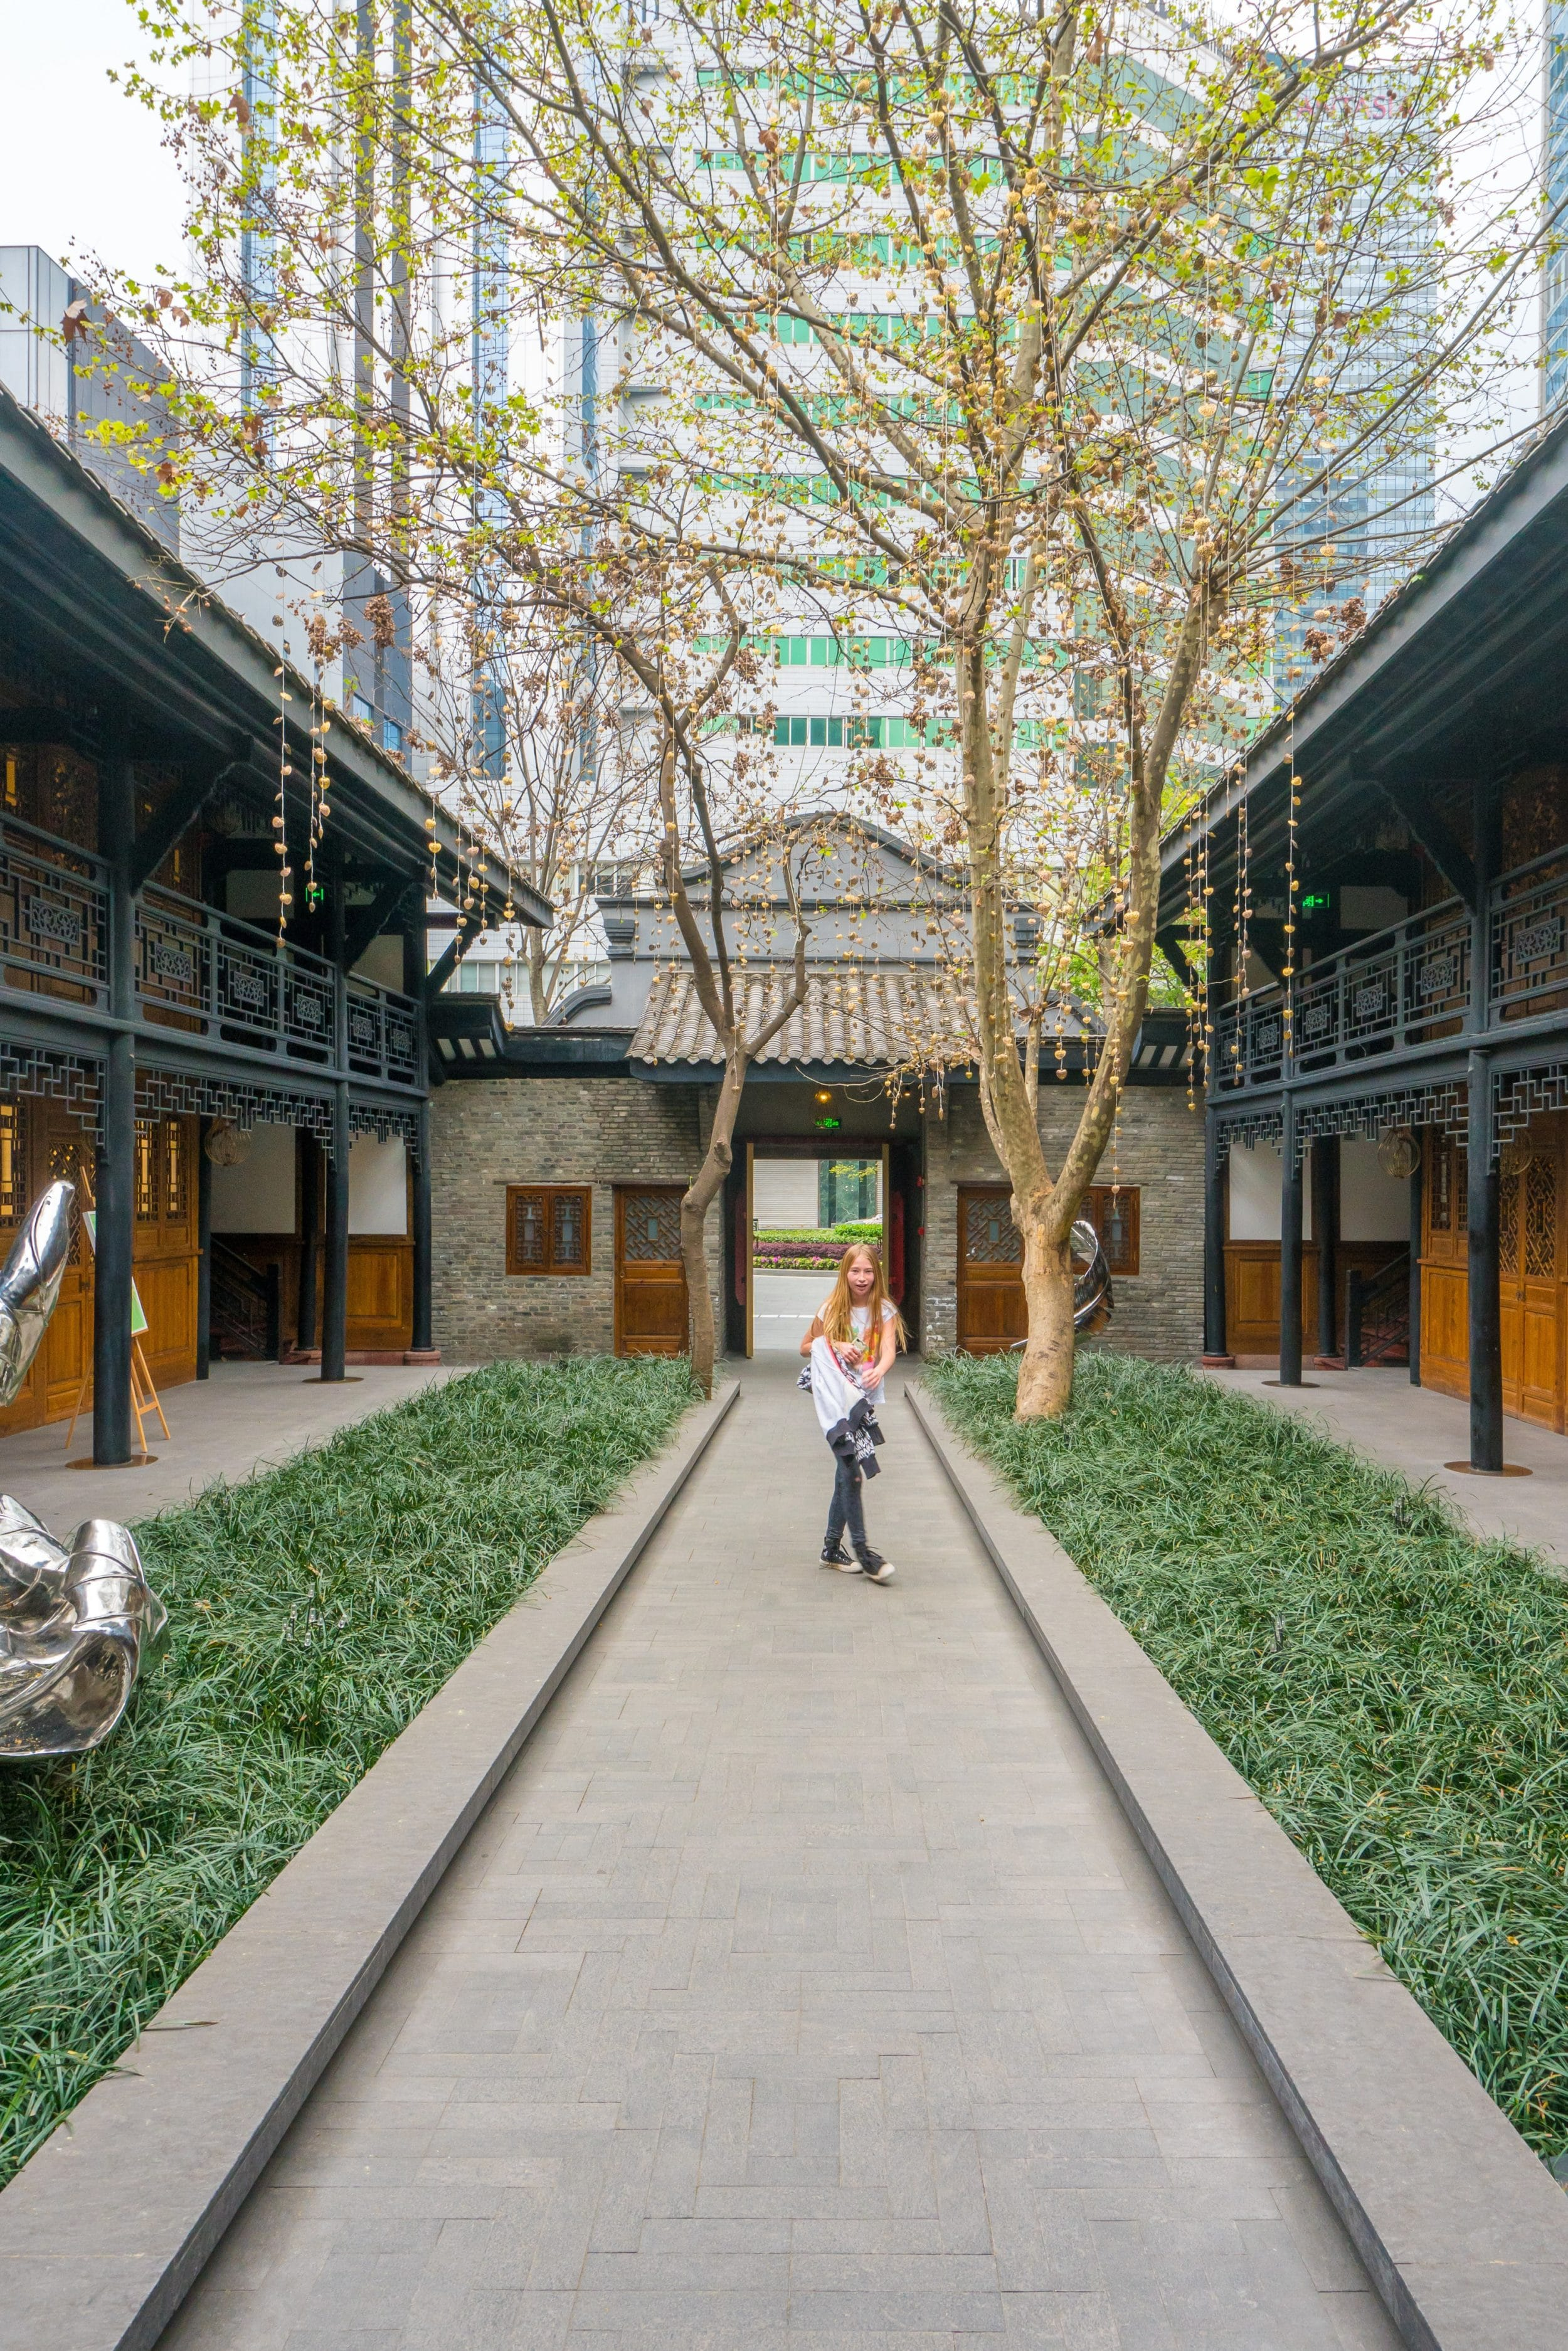 The Bitieshi courtyard at The Temple House, a luxury hotel in Chengdu.